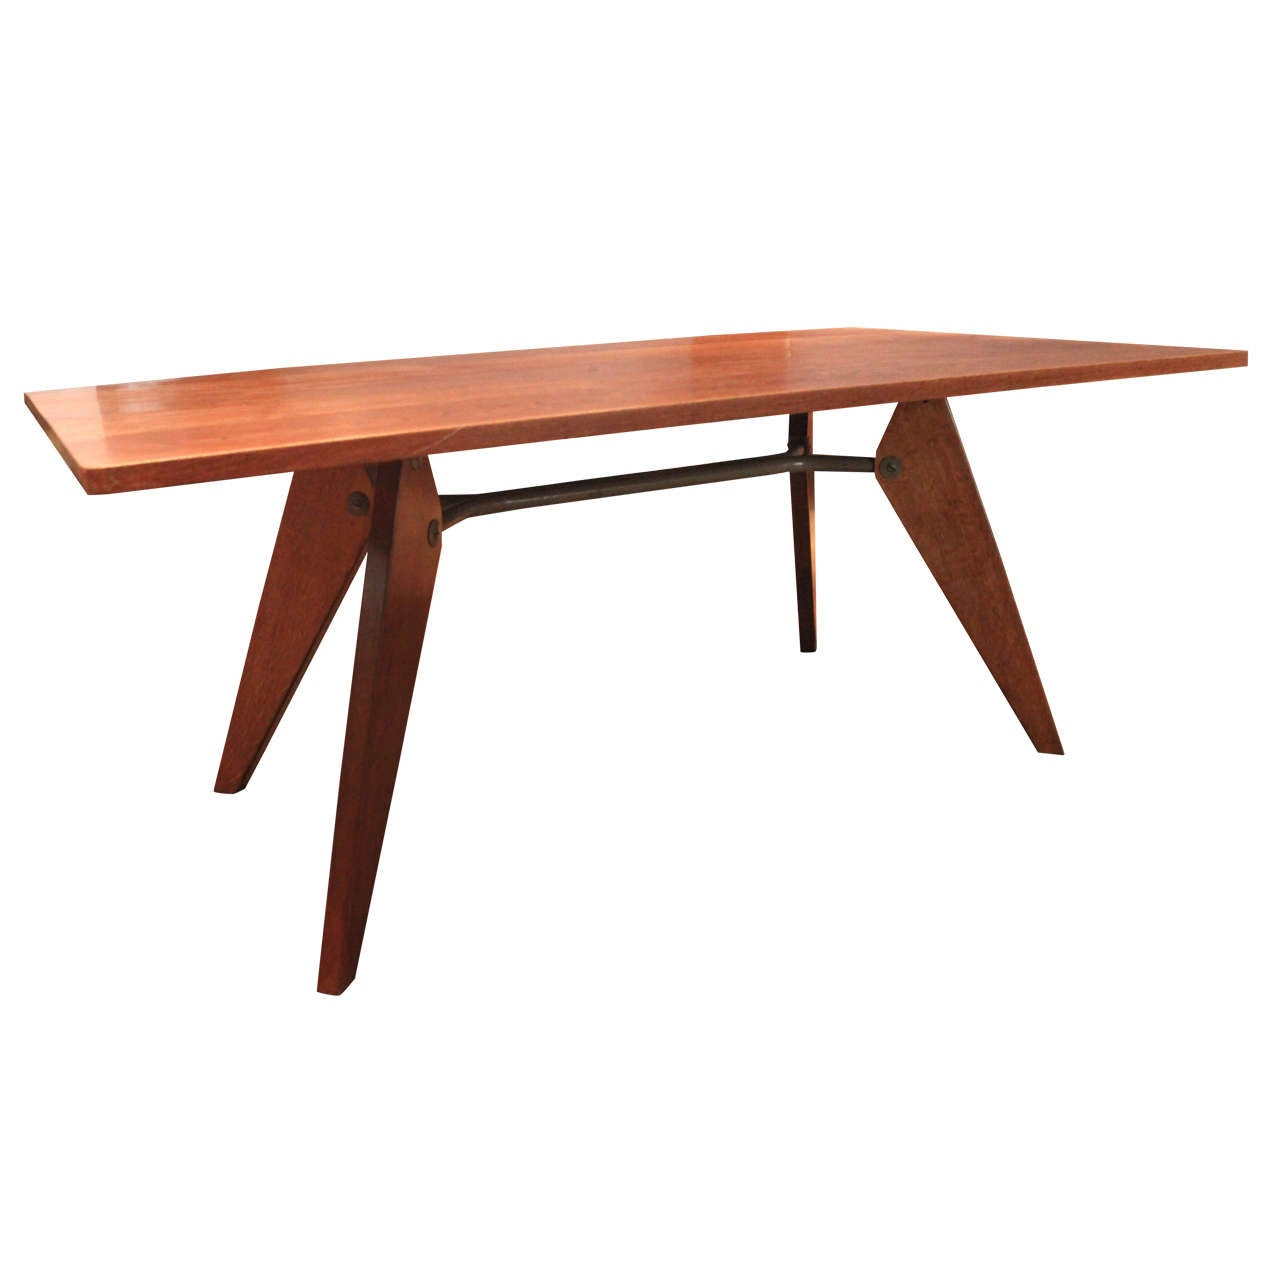 Jean Prouve Demountable Dining Table Jean Prouve Ateliers 1950 At 1stdibs